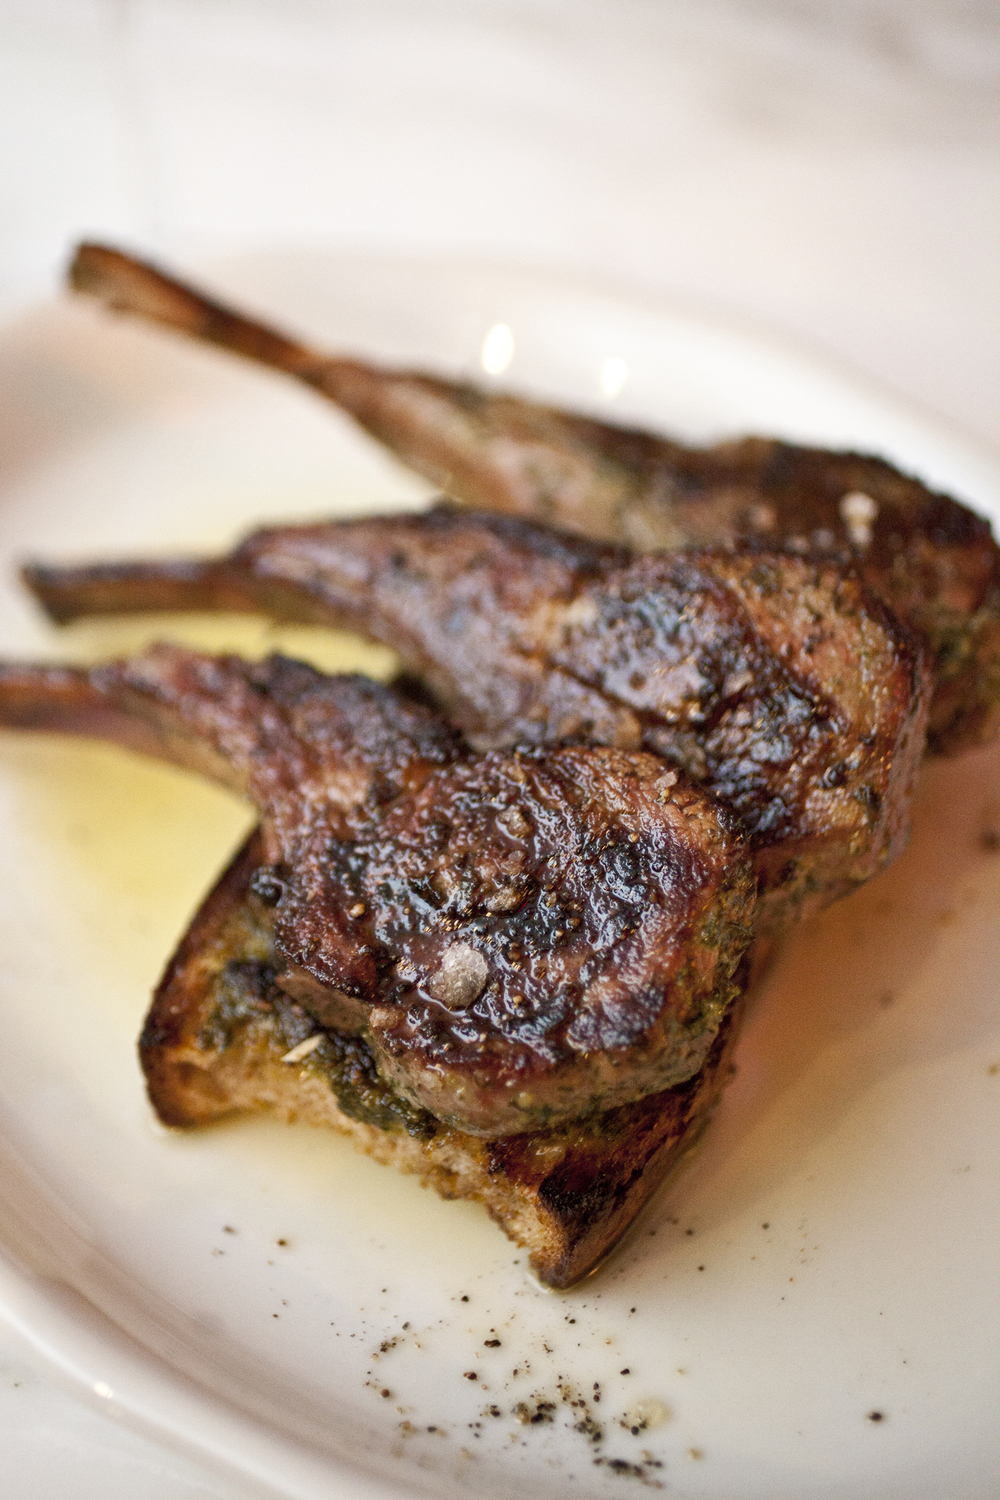 Wood-Grilled Lamb Chops scottadito at Marco's